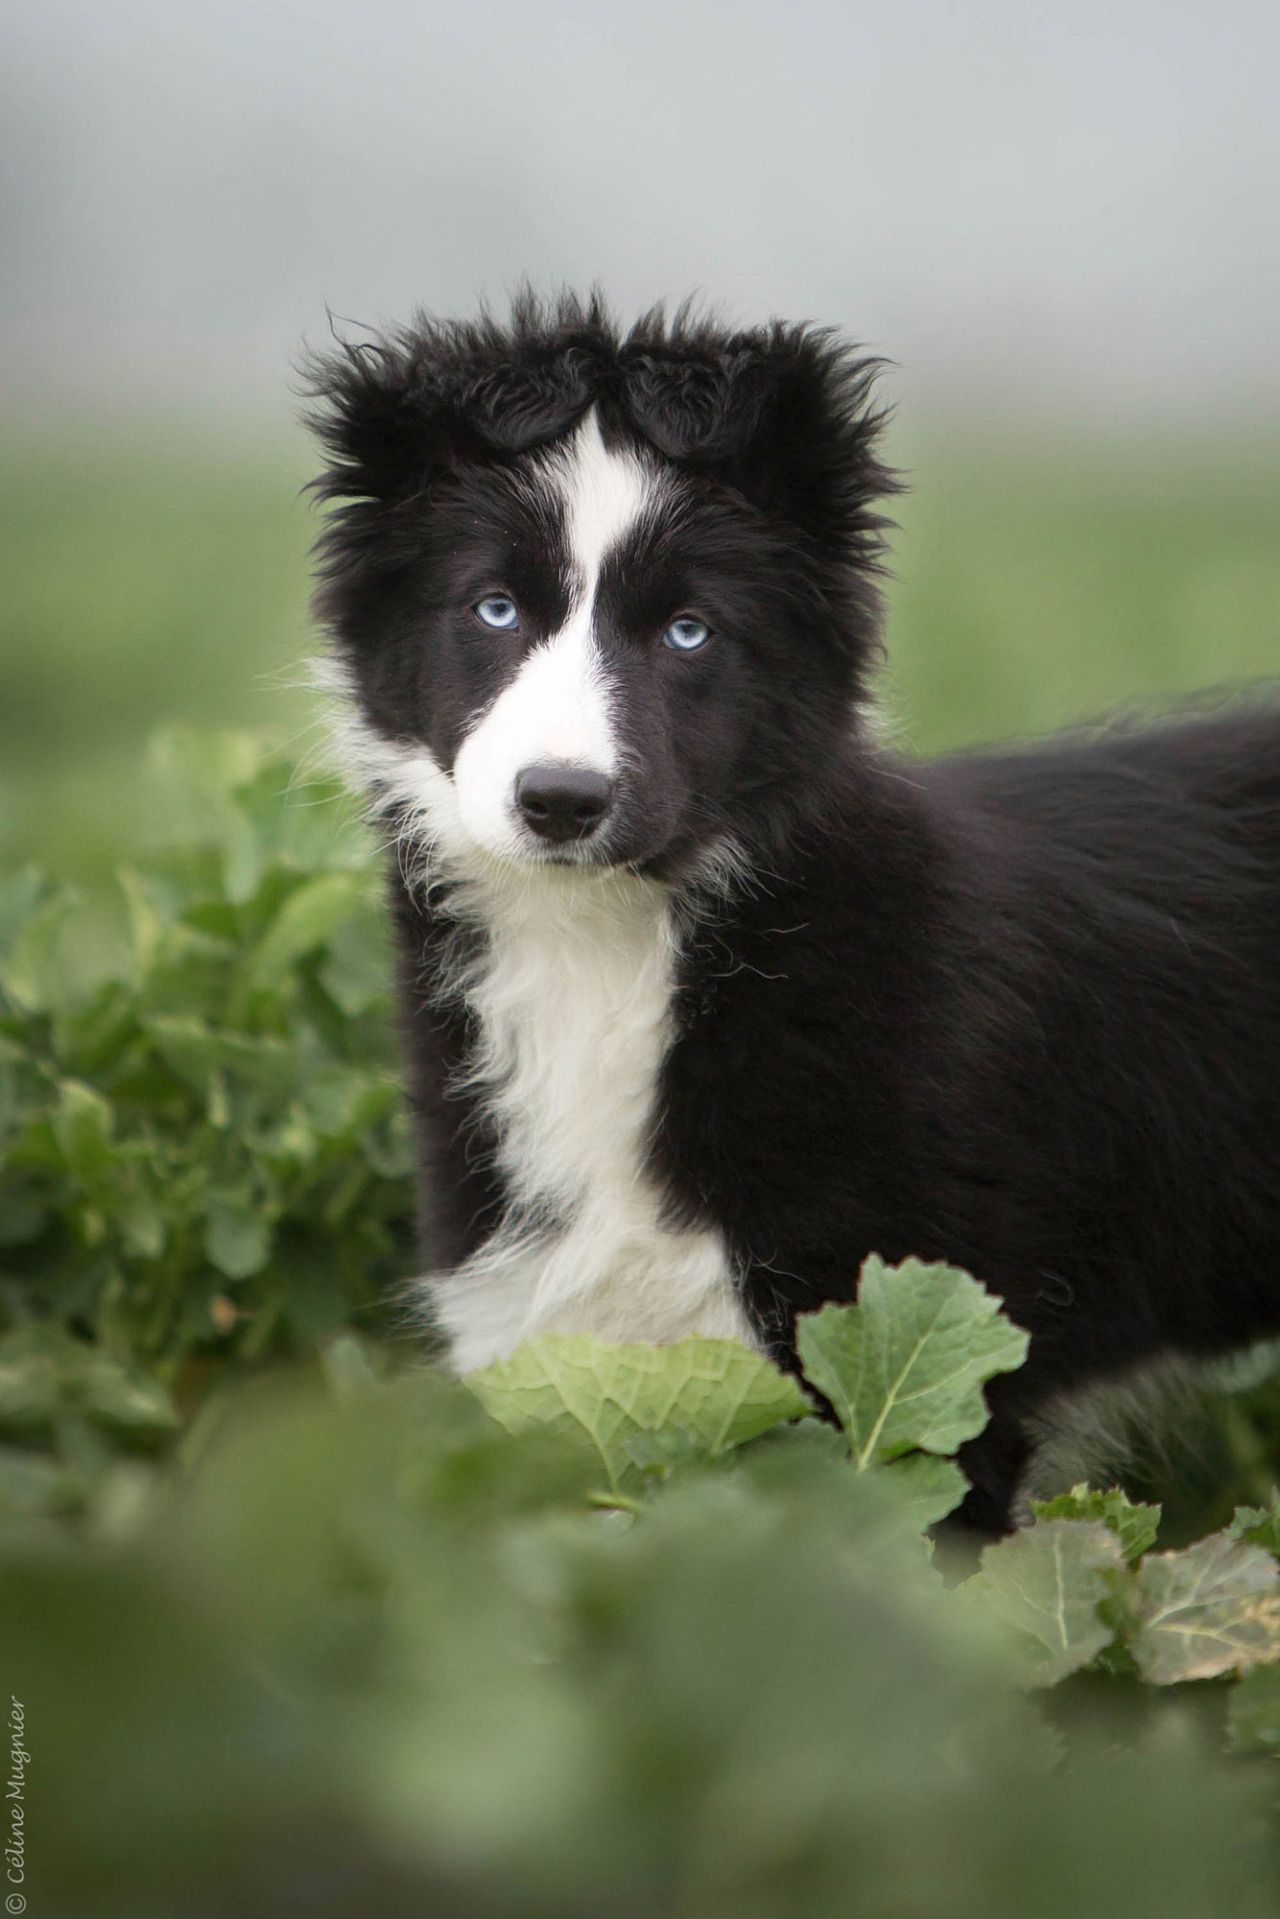 Oh my, those awesome ears and.....that face! Collie